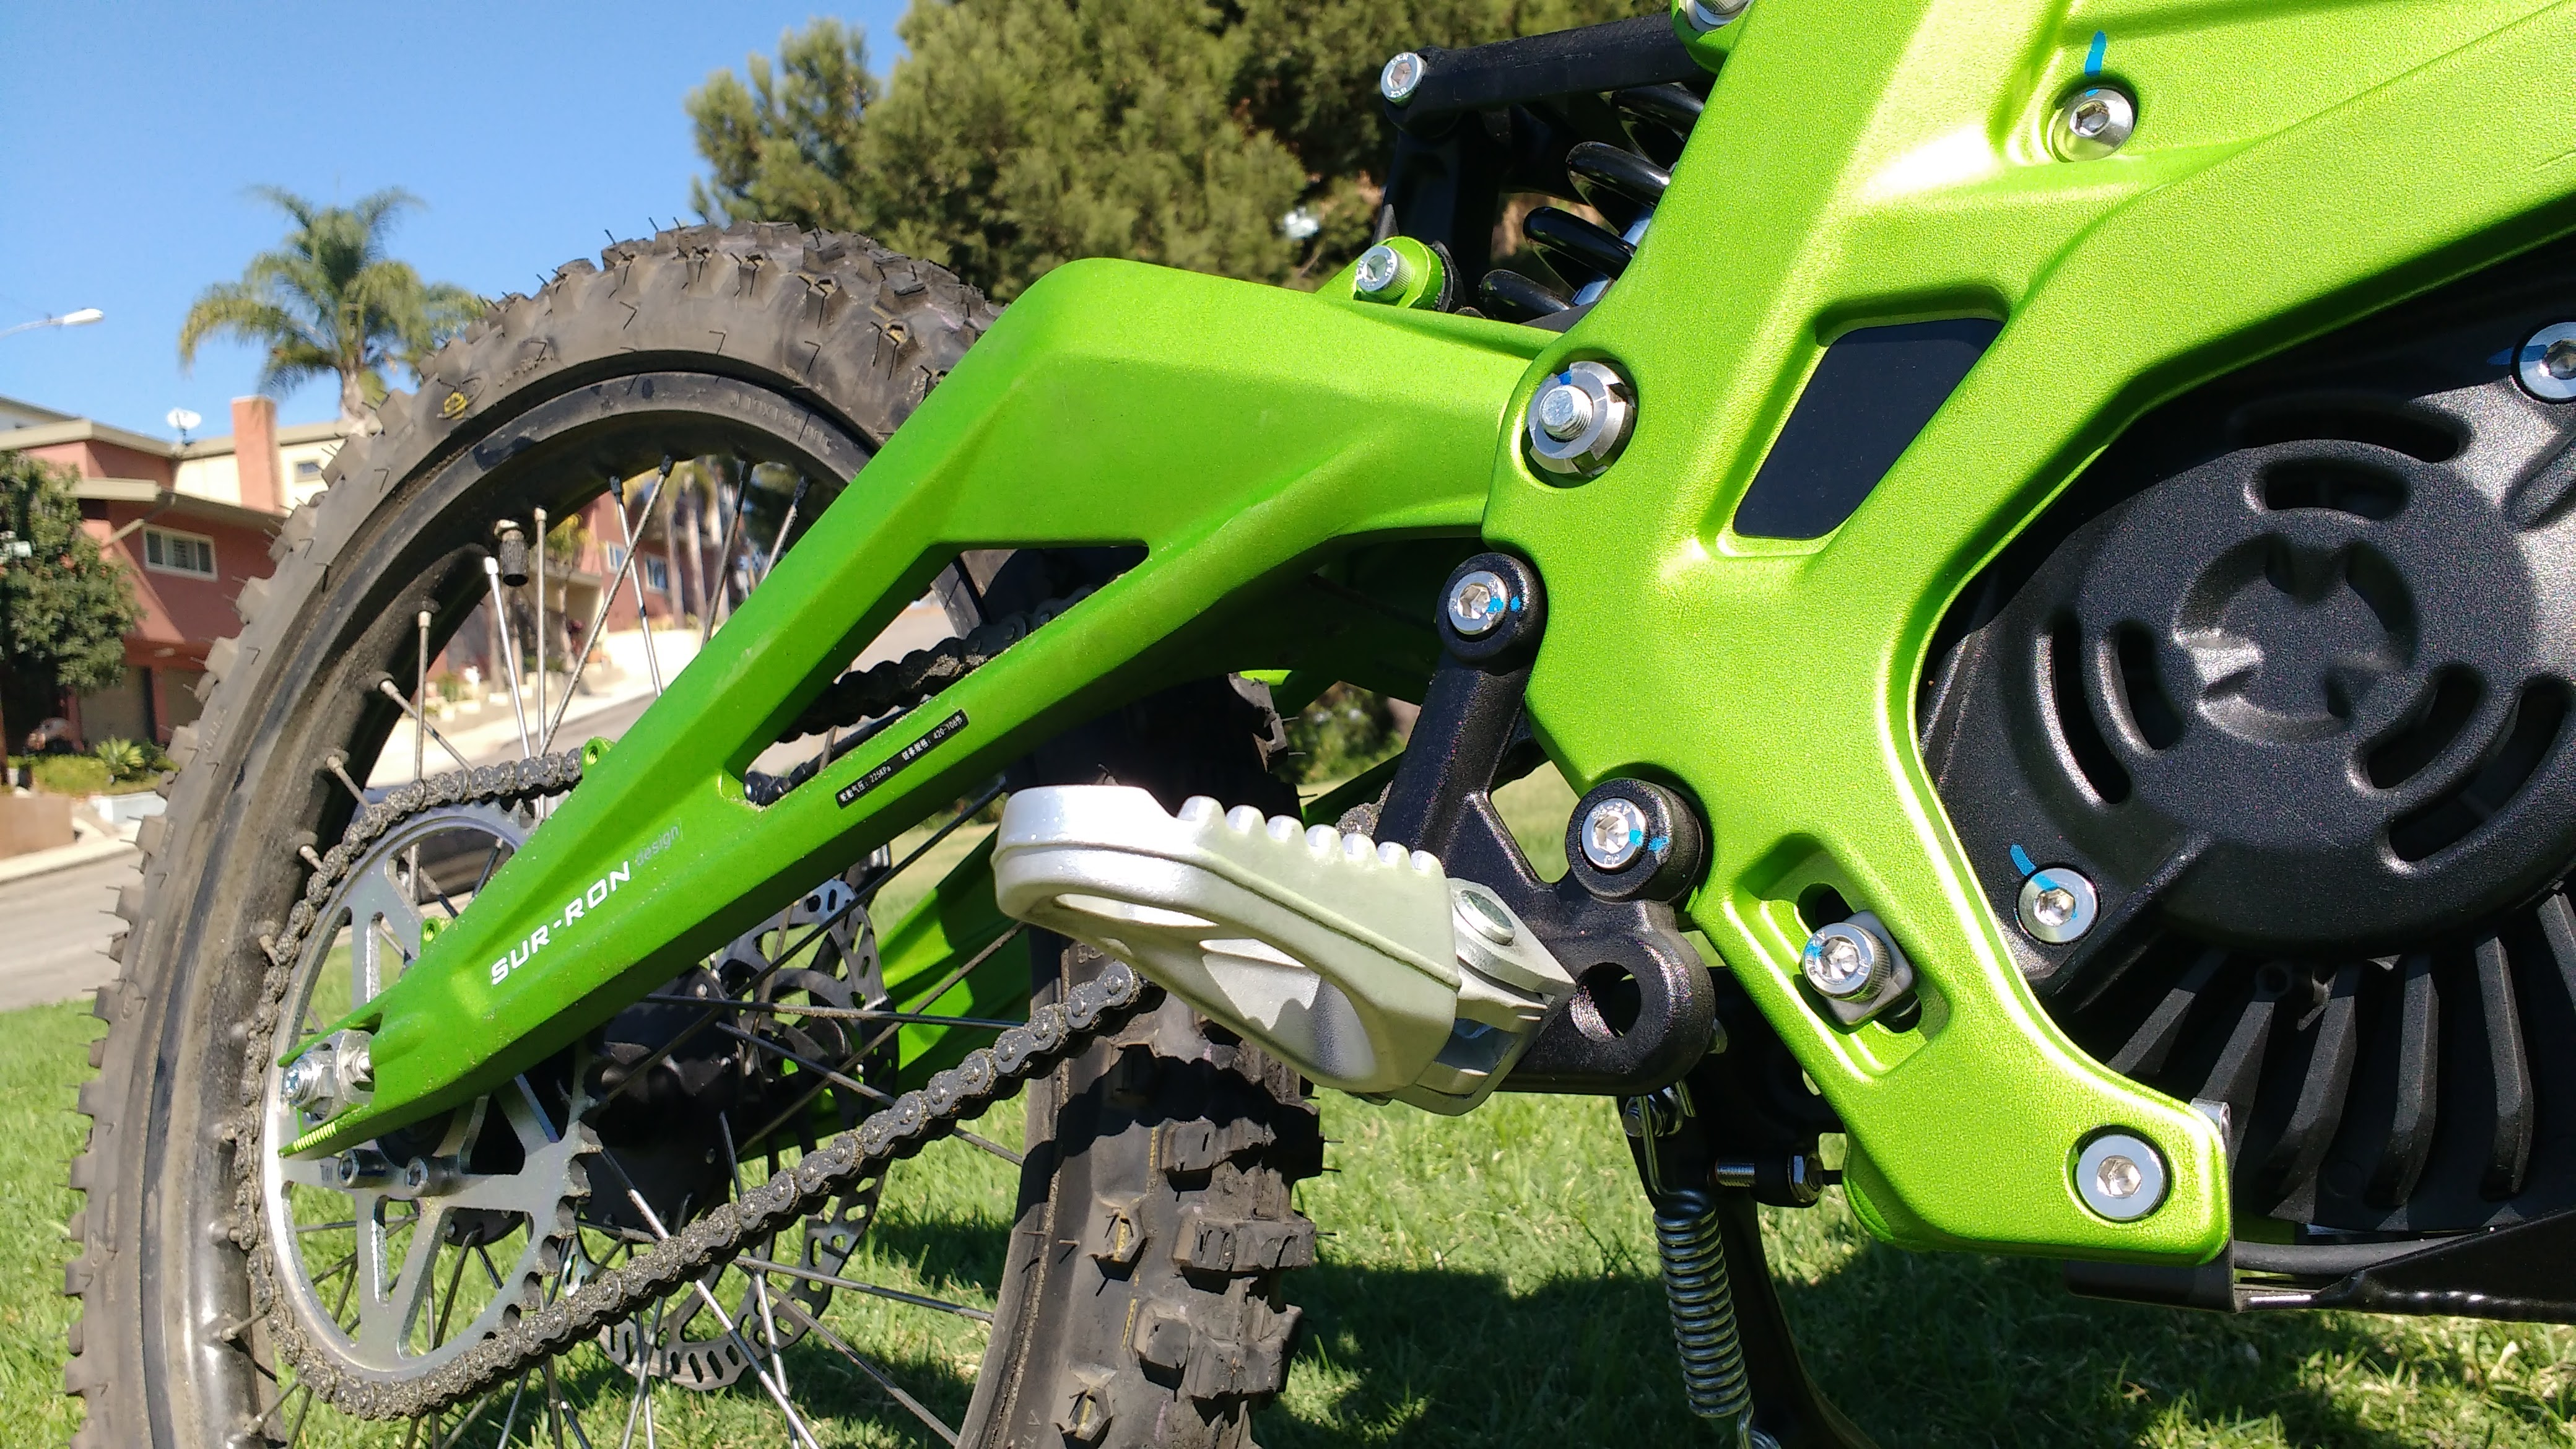 The New Age Of Affordable Electric Motorcross : The Sur-Ron 60v 32Ah